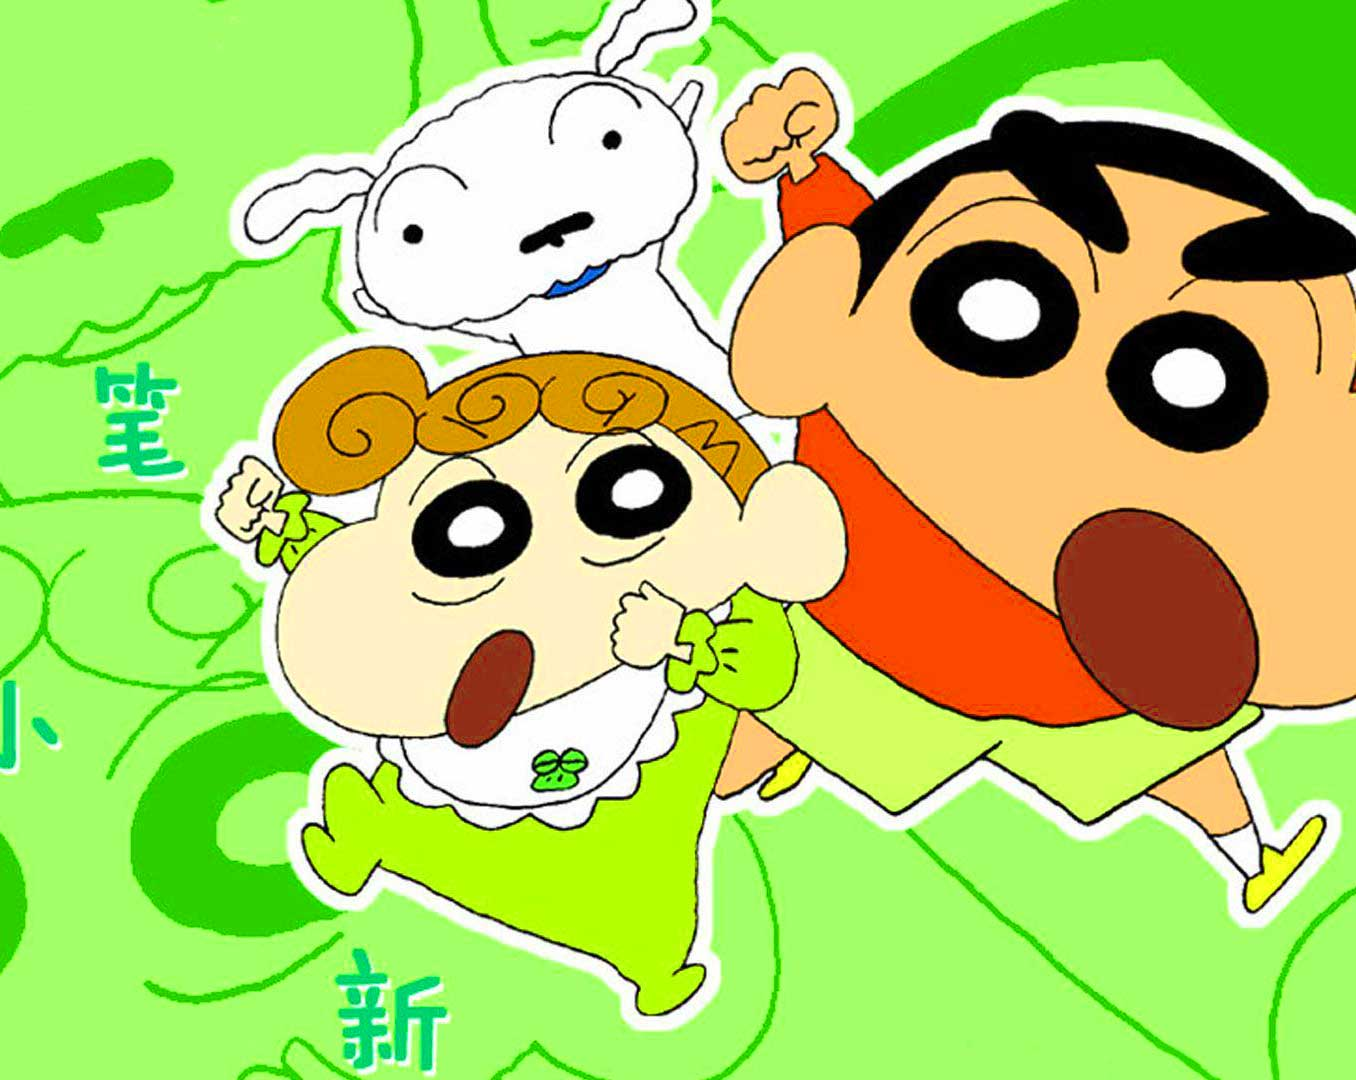 latest shinchan whatsapp dp Images pictures download